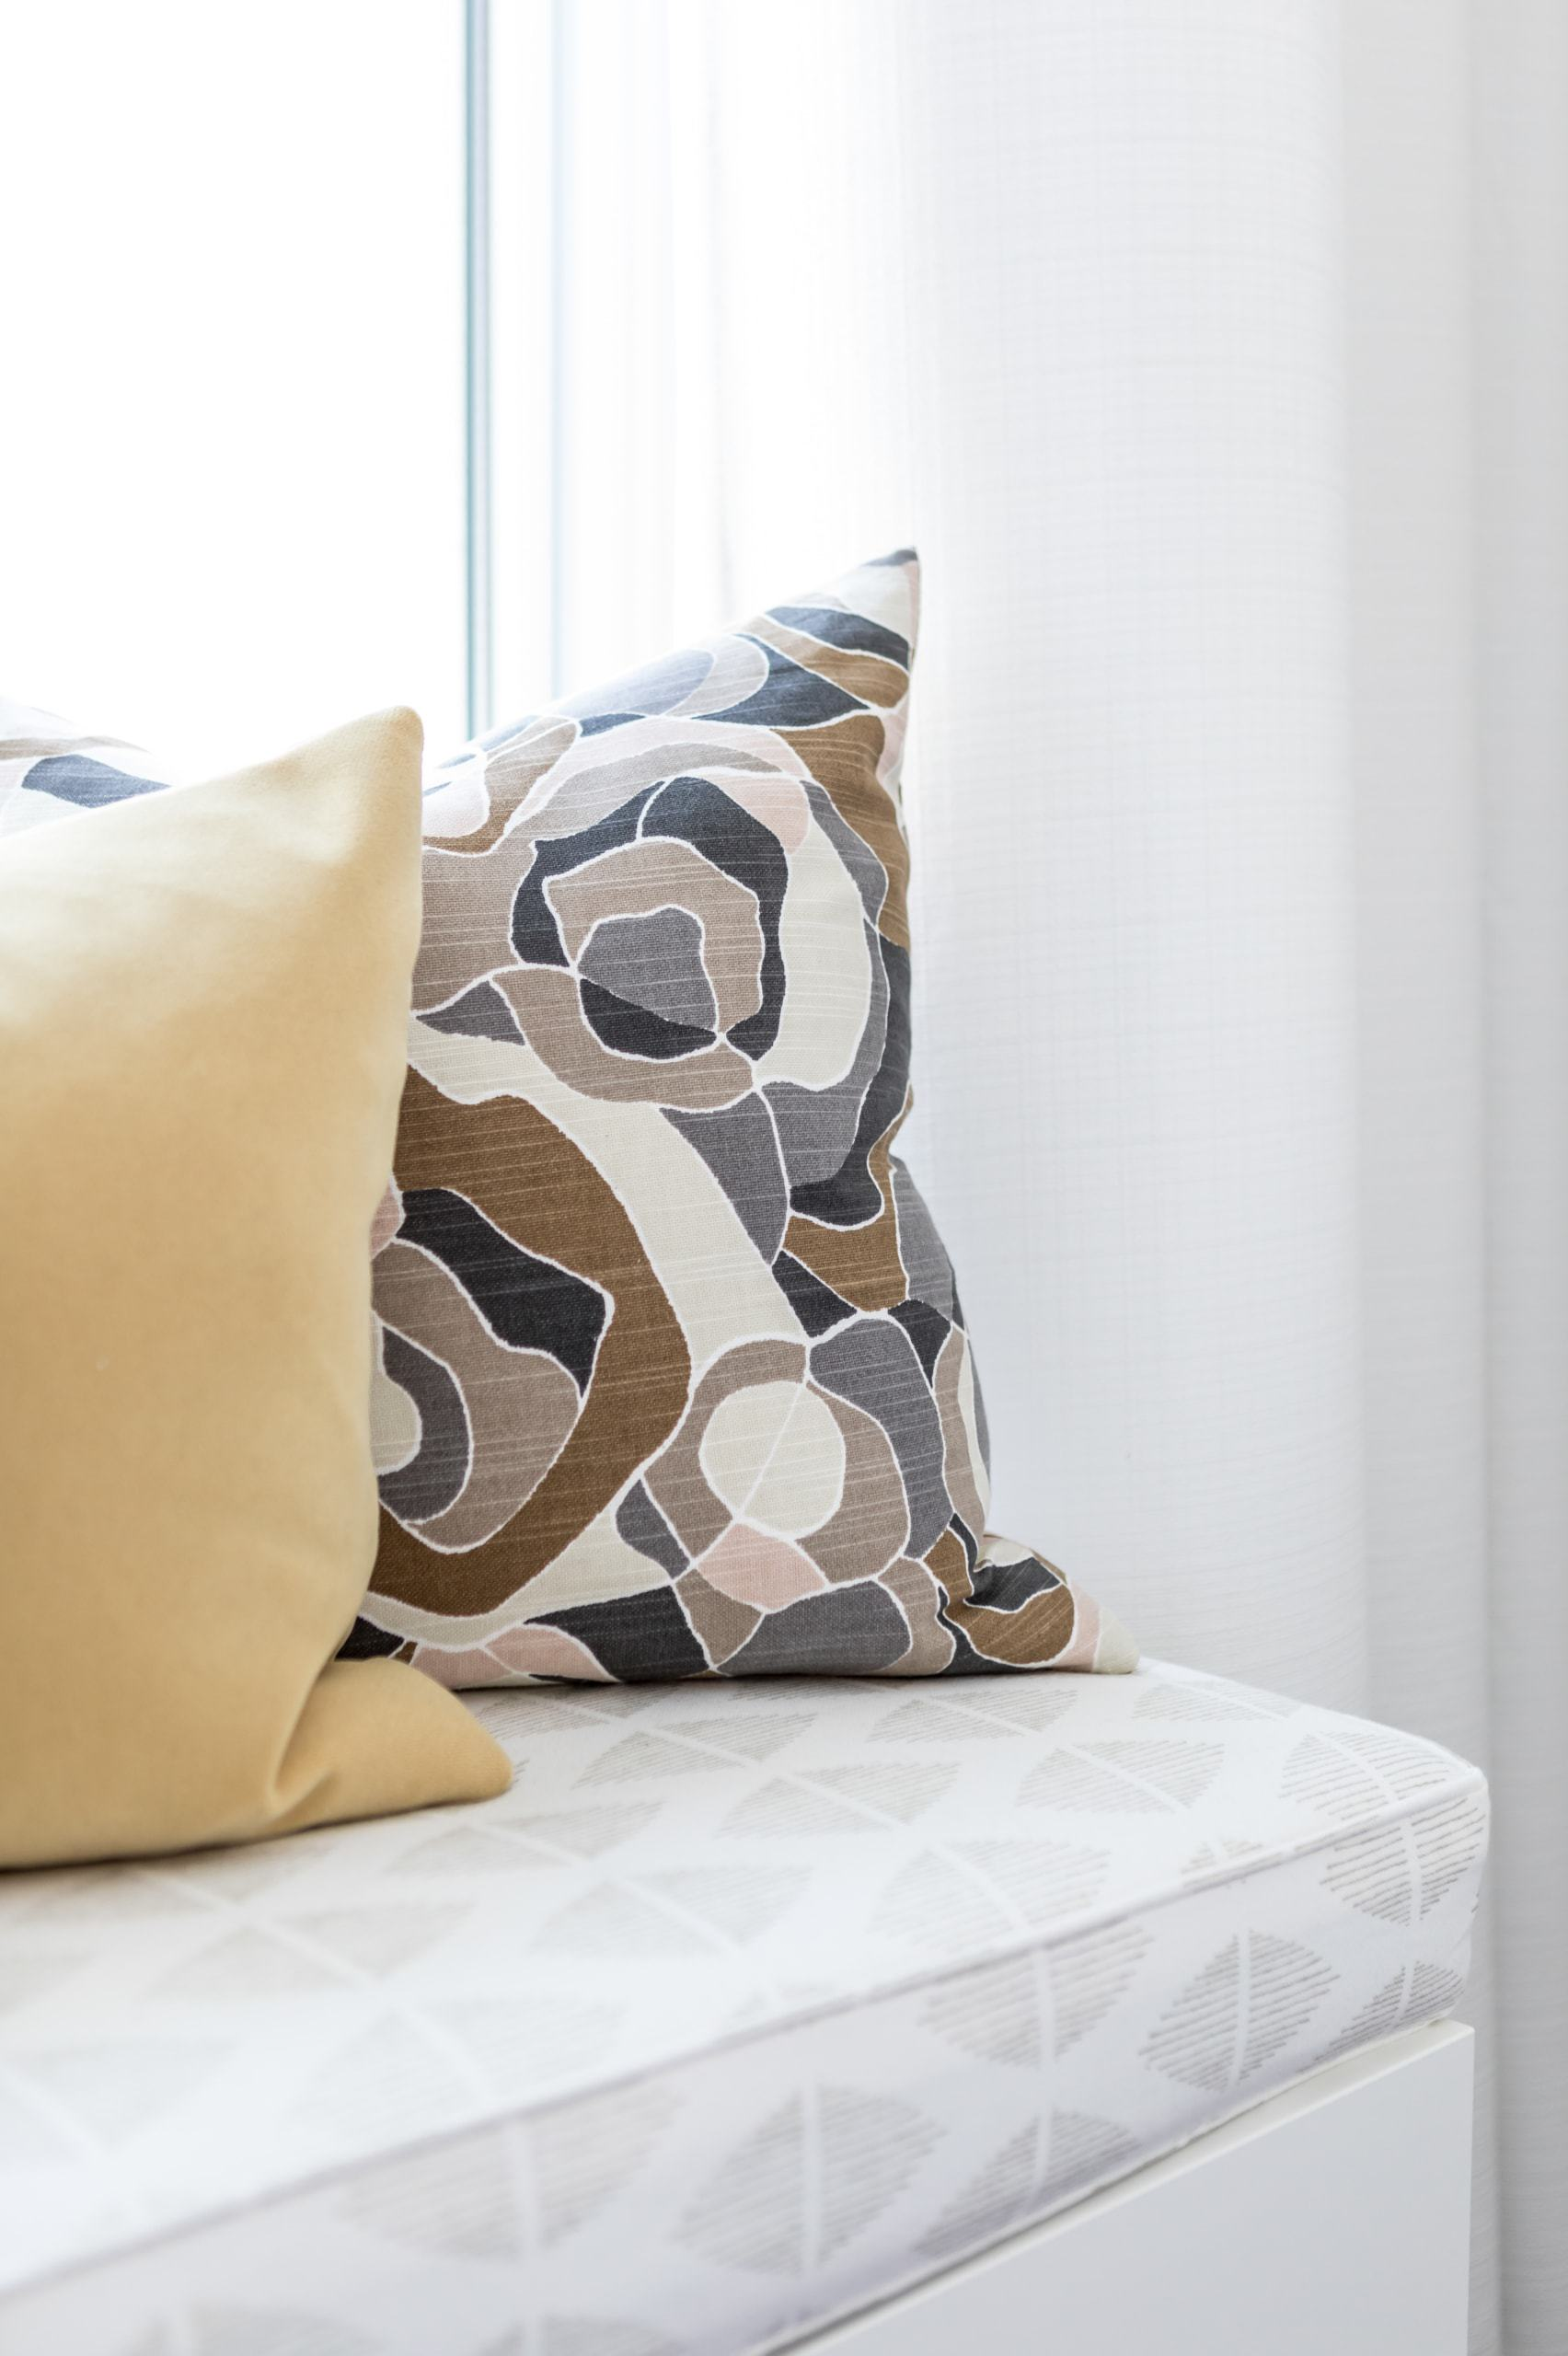 Brown patterned pillow near the window